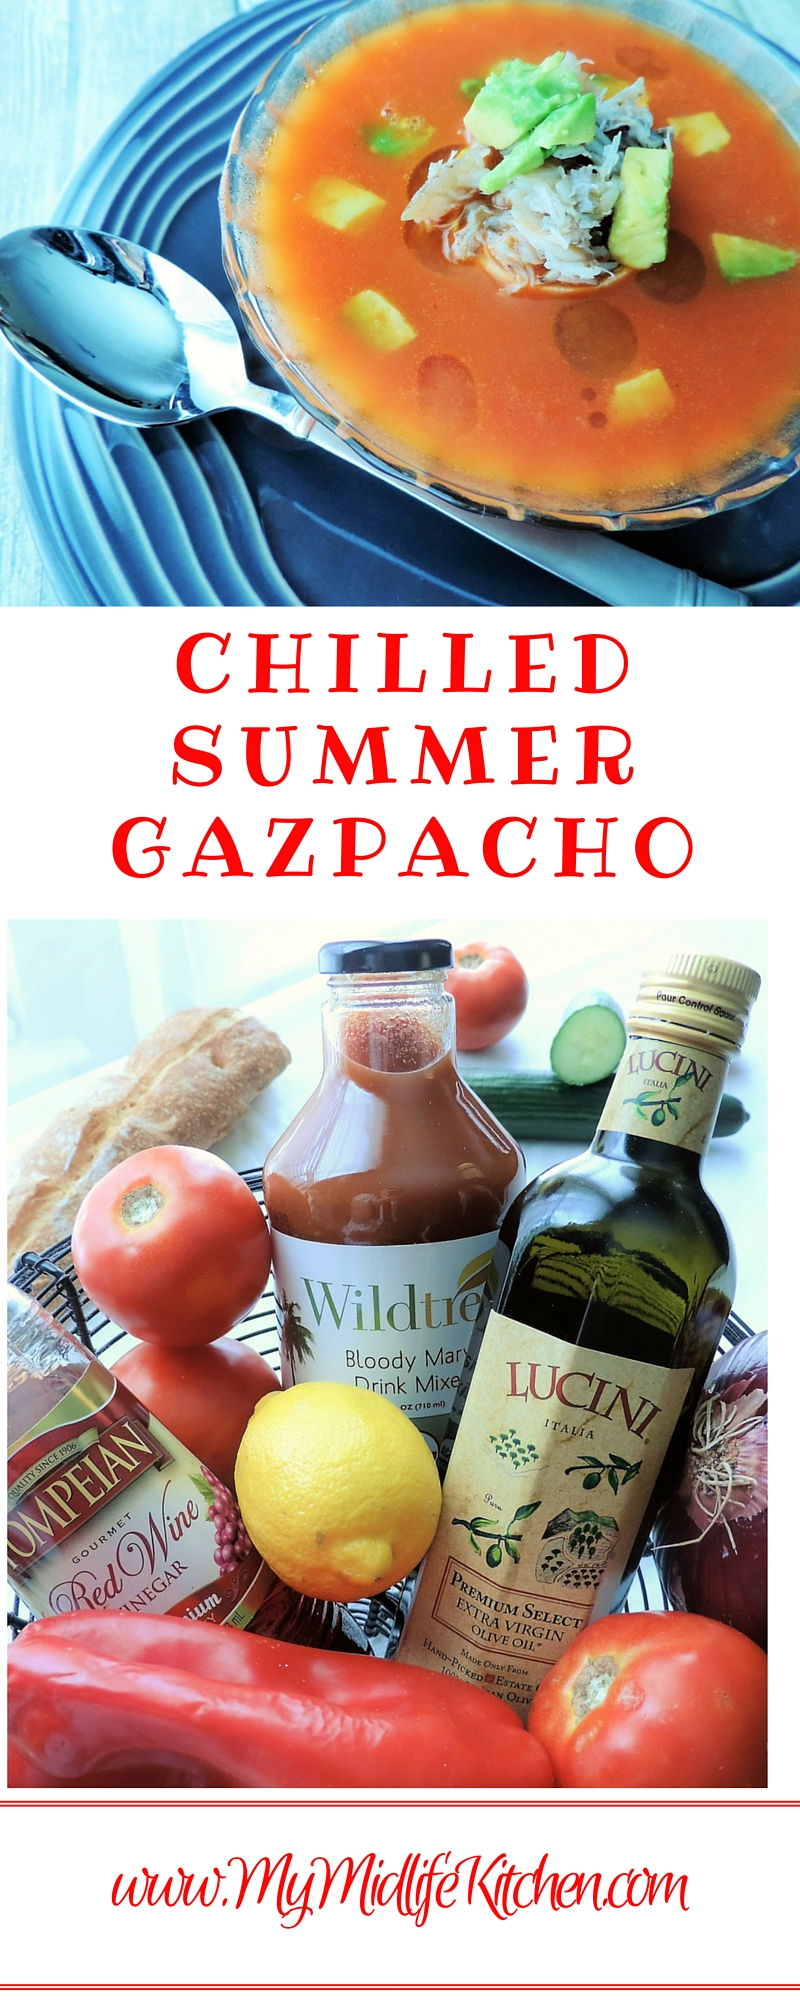 Chilled Summer Gazpacho